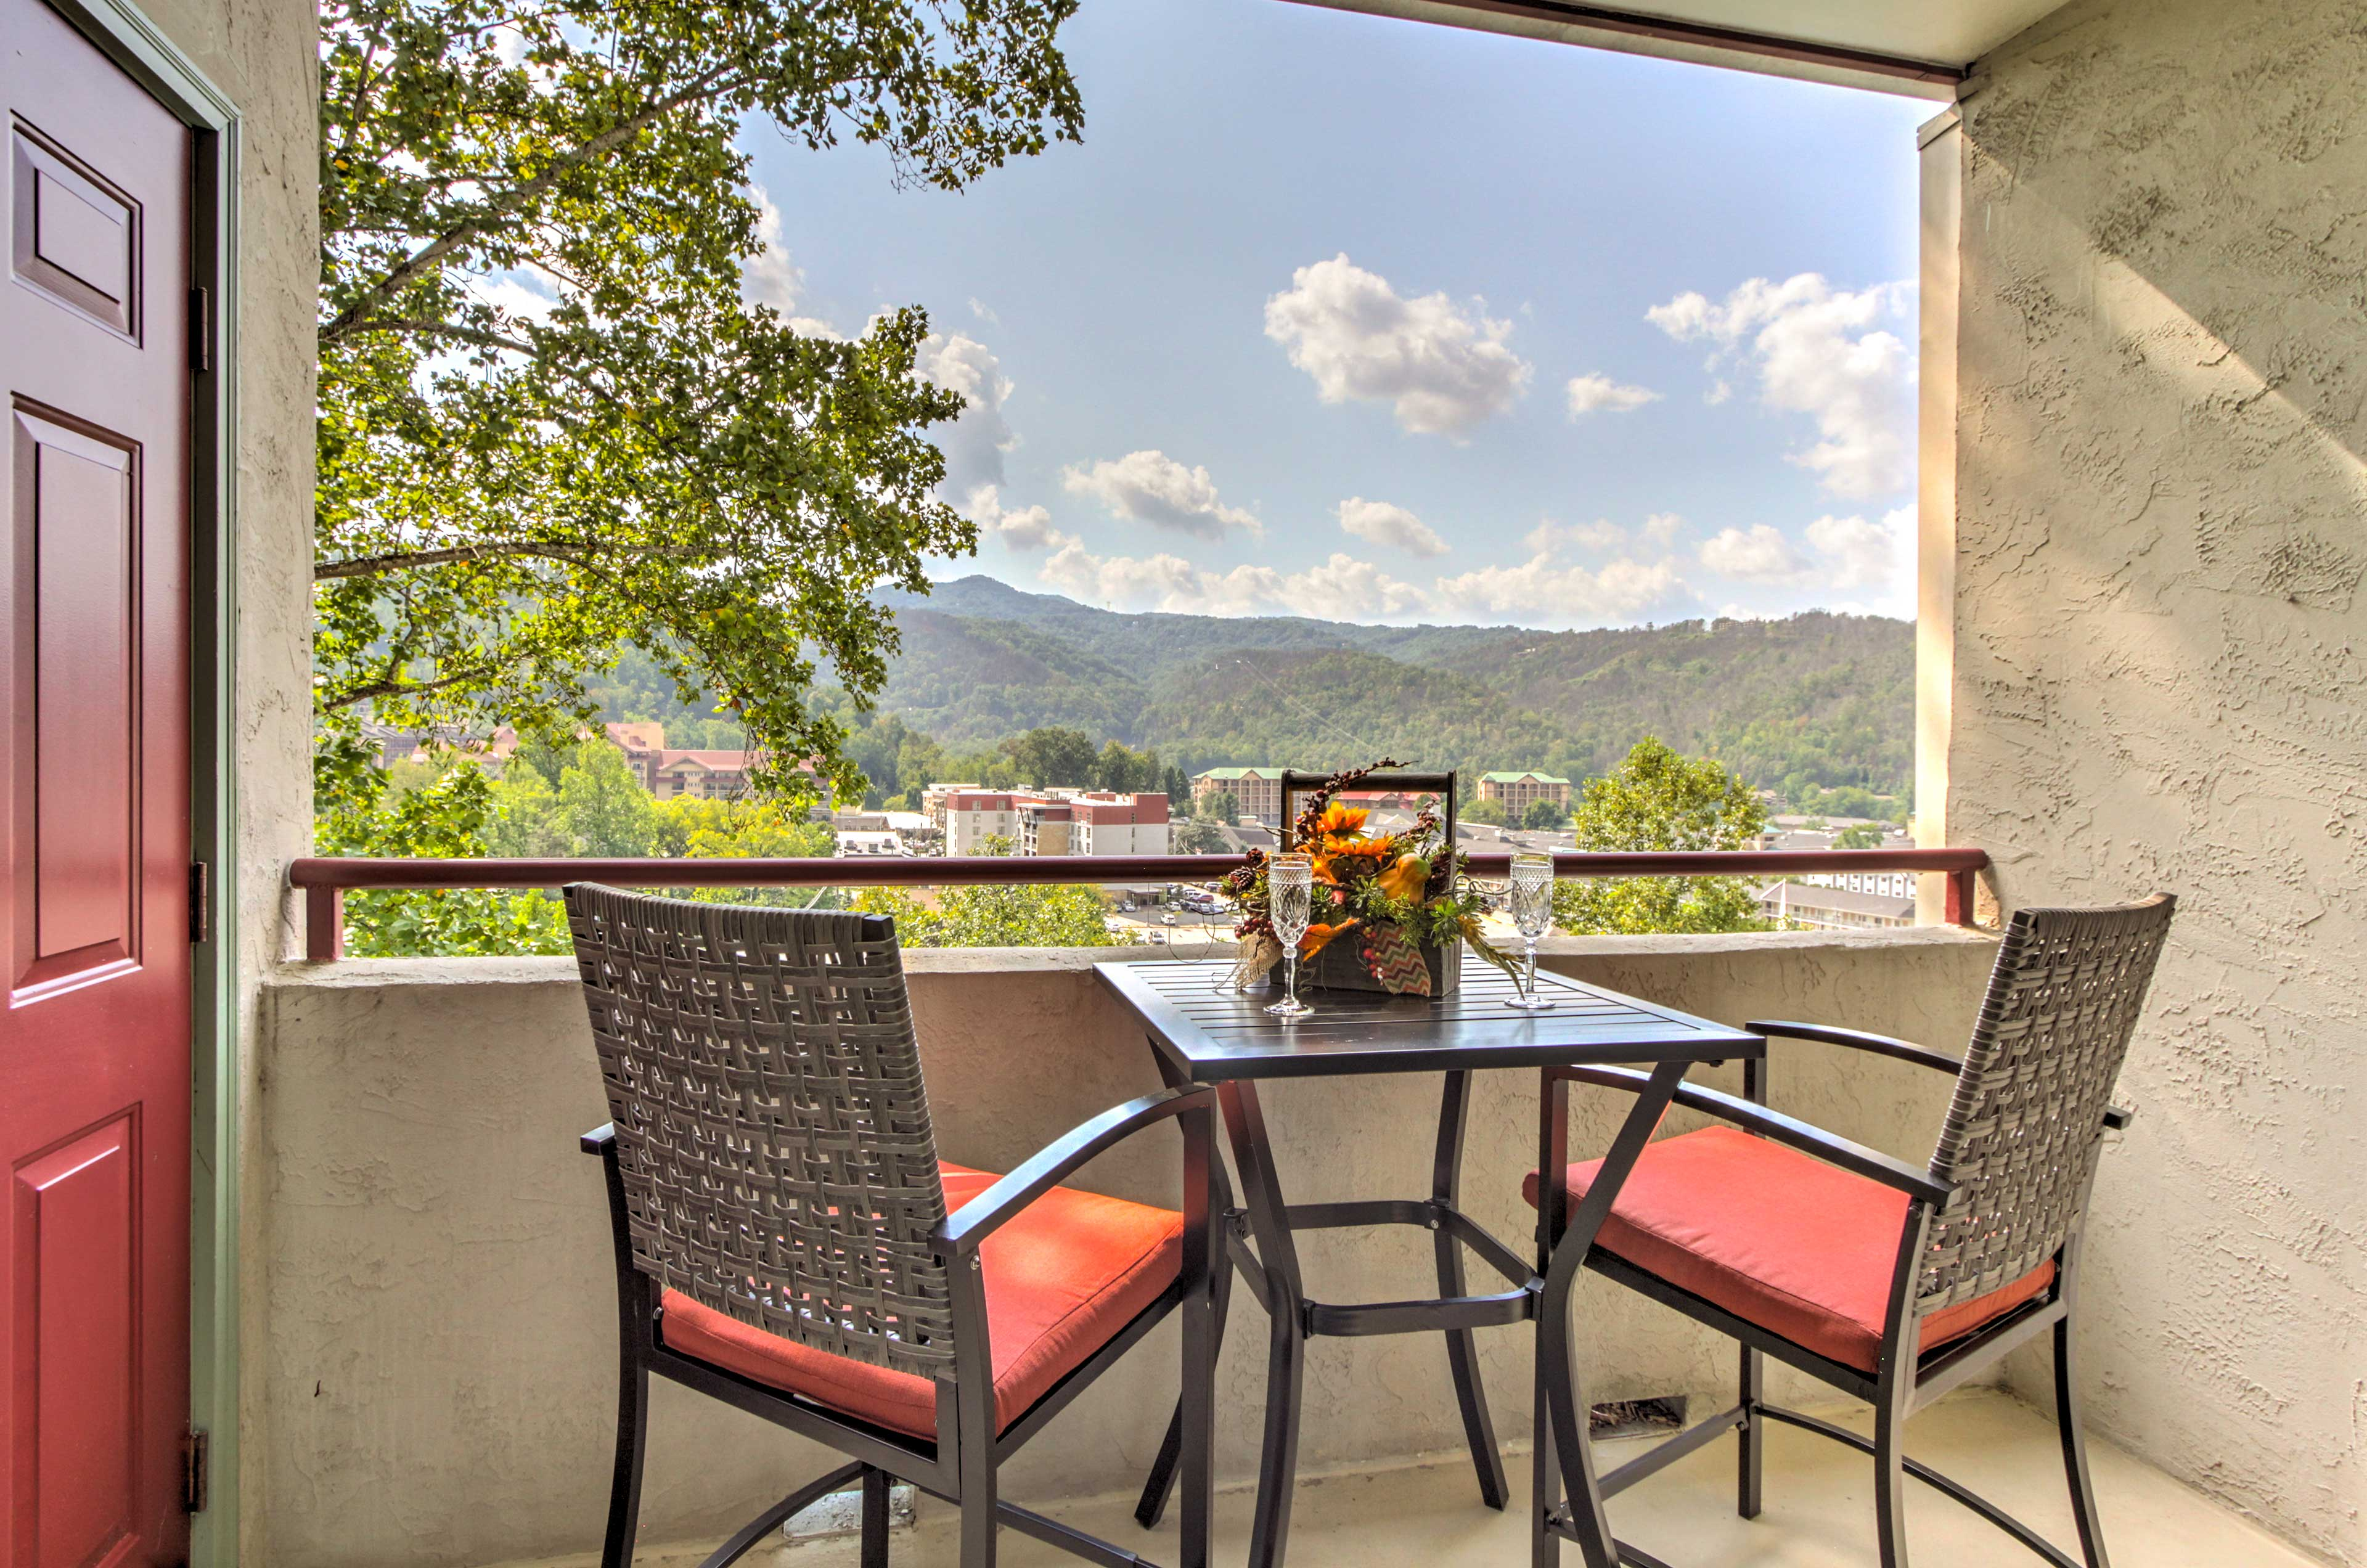 The separate balcony offers a charming cafe table and stunning views.